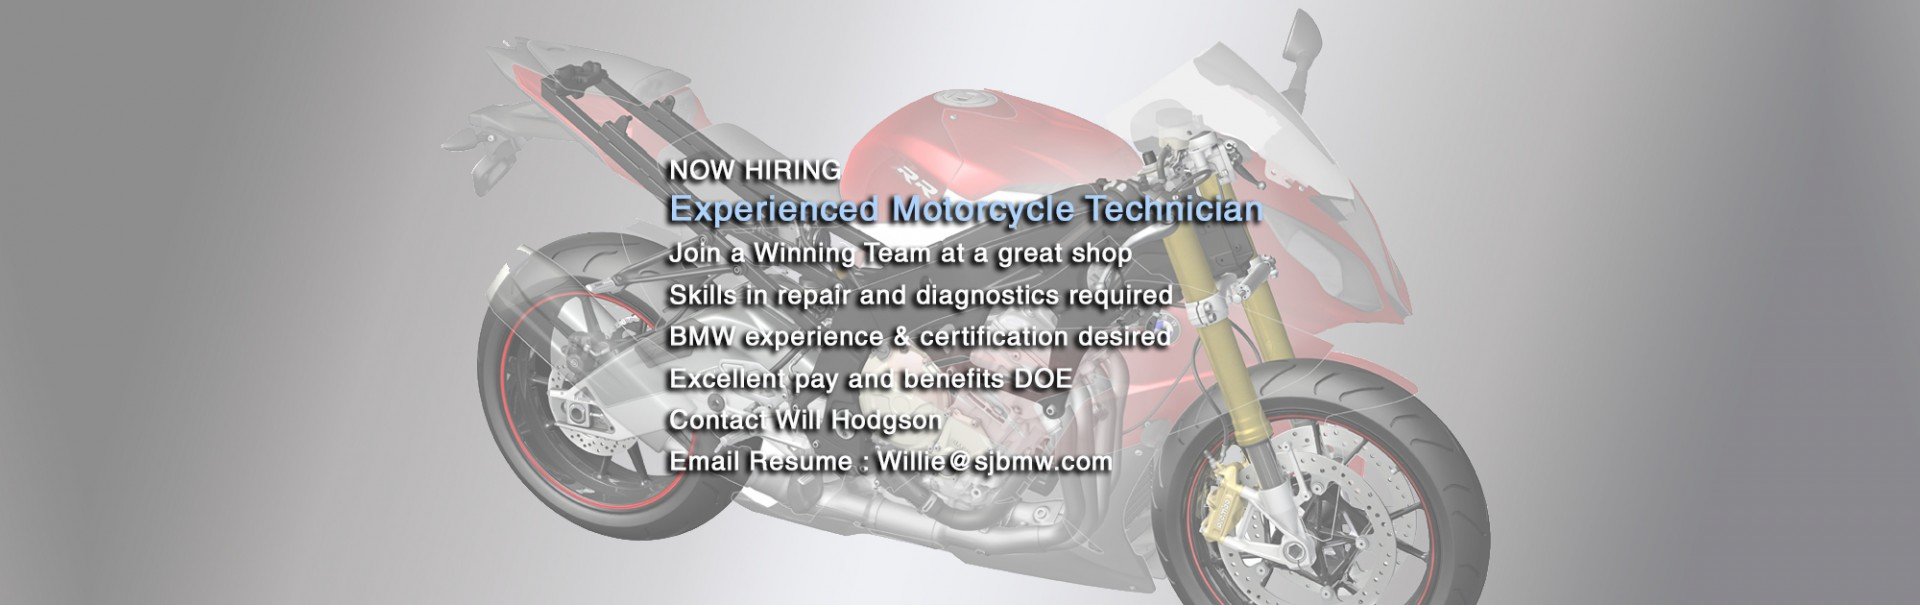 Hiring Experienced Motorcycle Technician